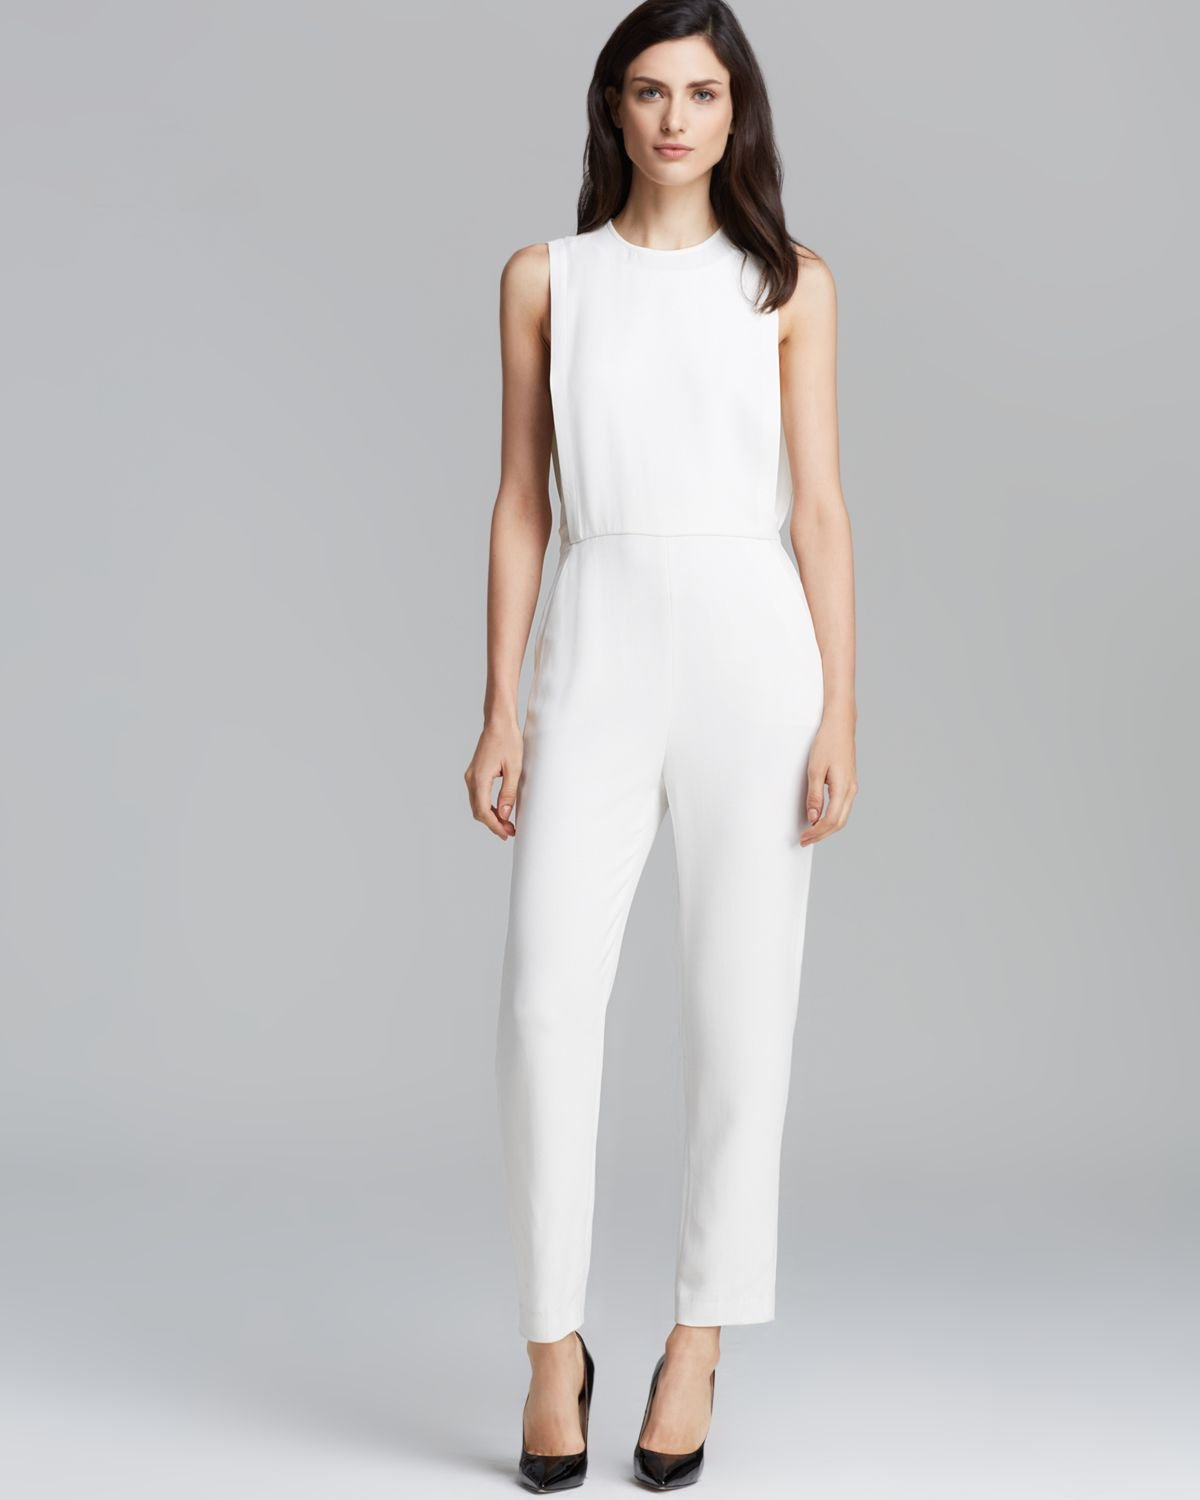 Fantastic White Jumpsuits For Women Street Style Trends Uploaded By Outfitsbible